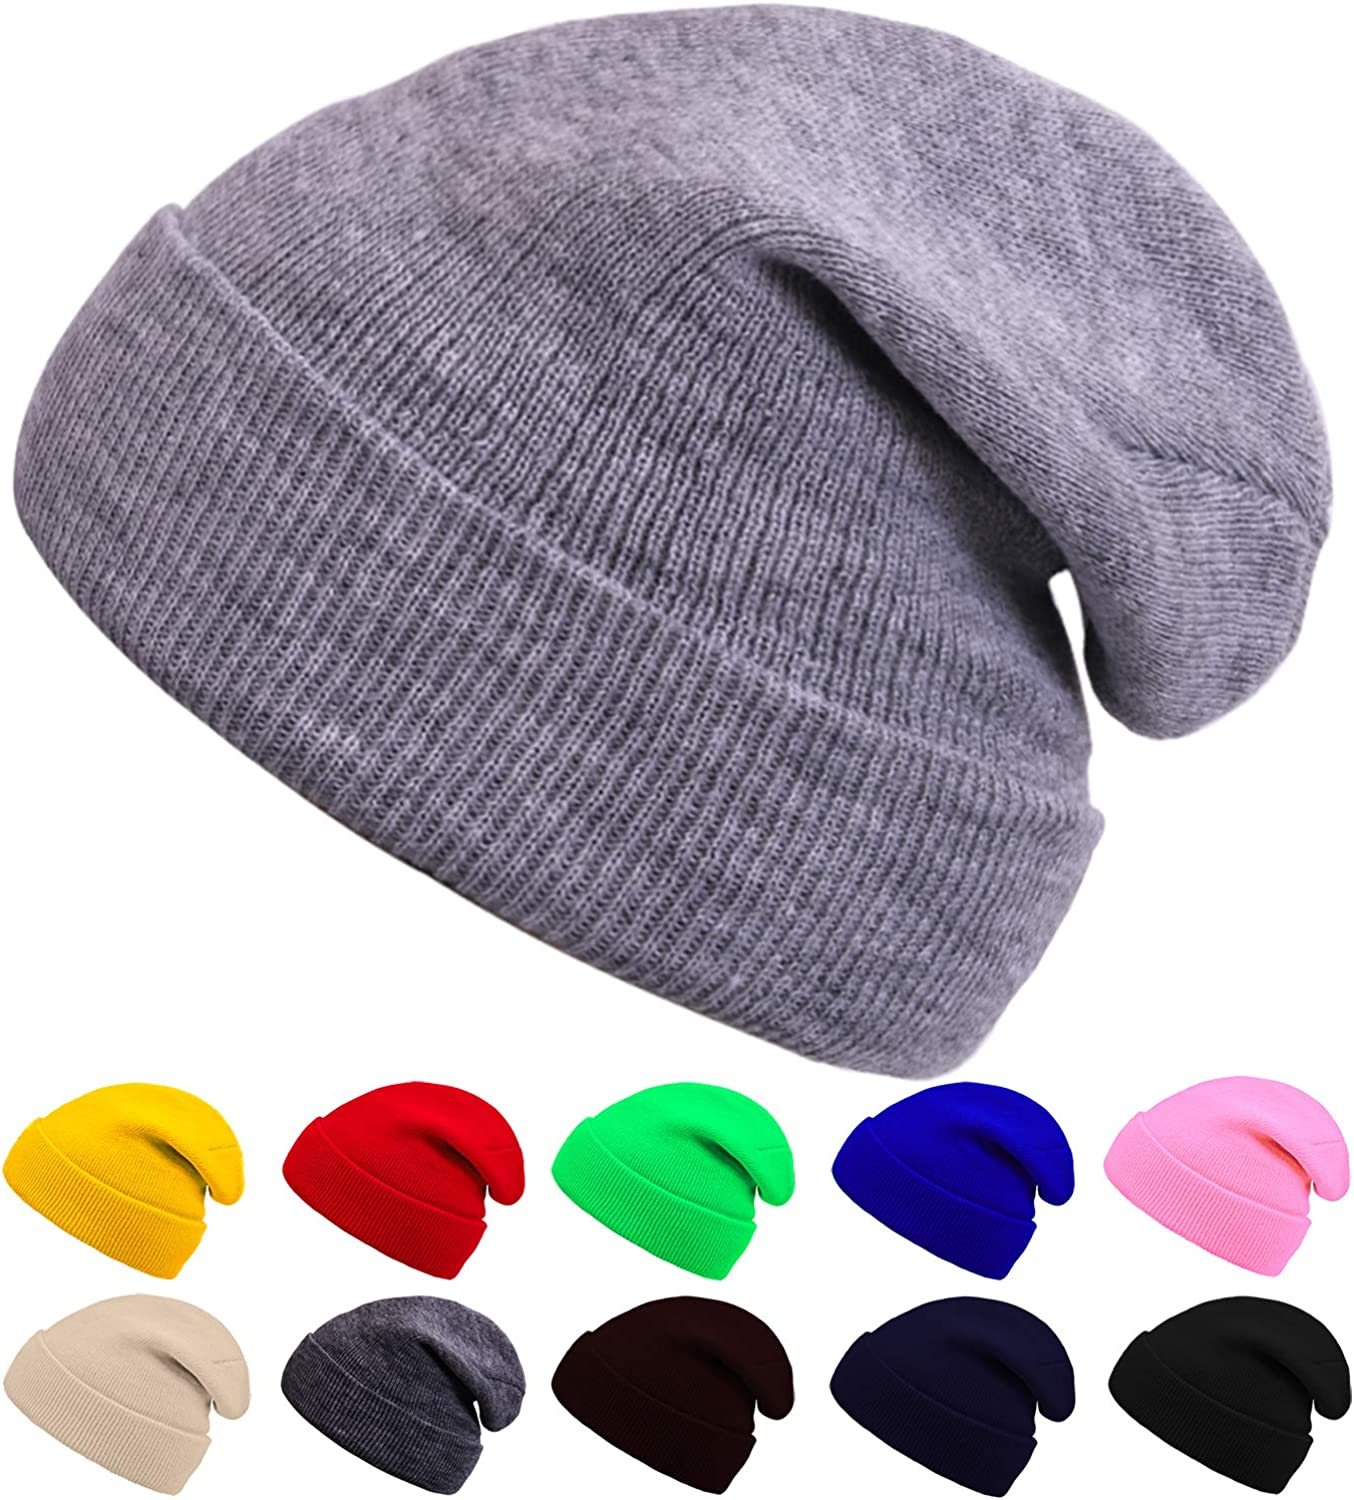 SUNNEEHOME Beanies for Kids Winter Knitted Warm Cold Weather Beanie Hats Boys Girls Caps